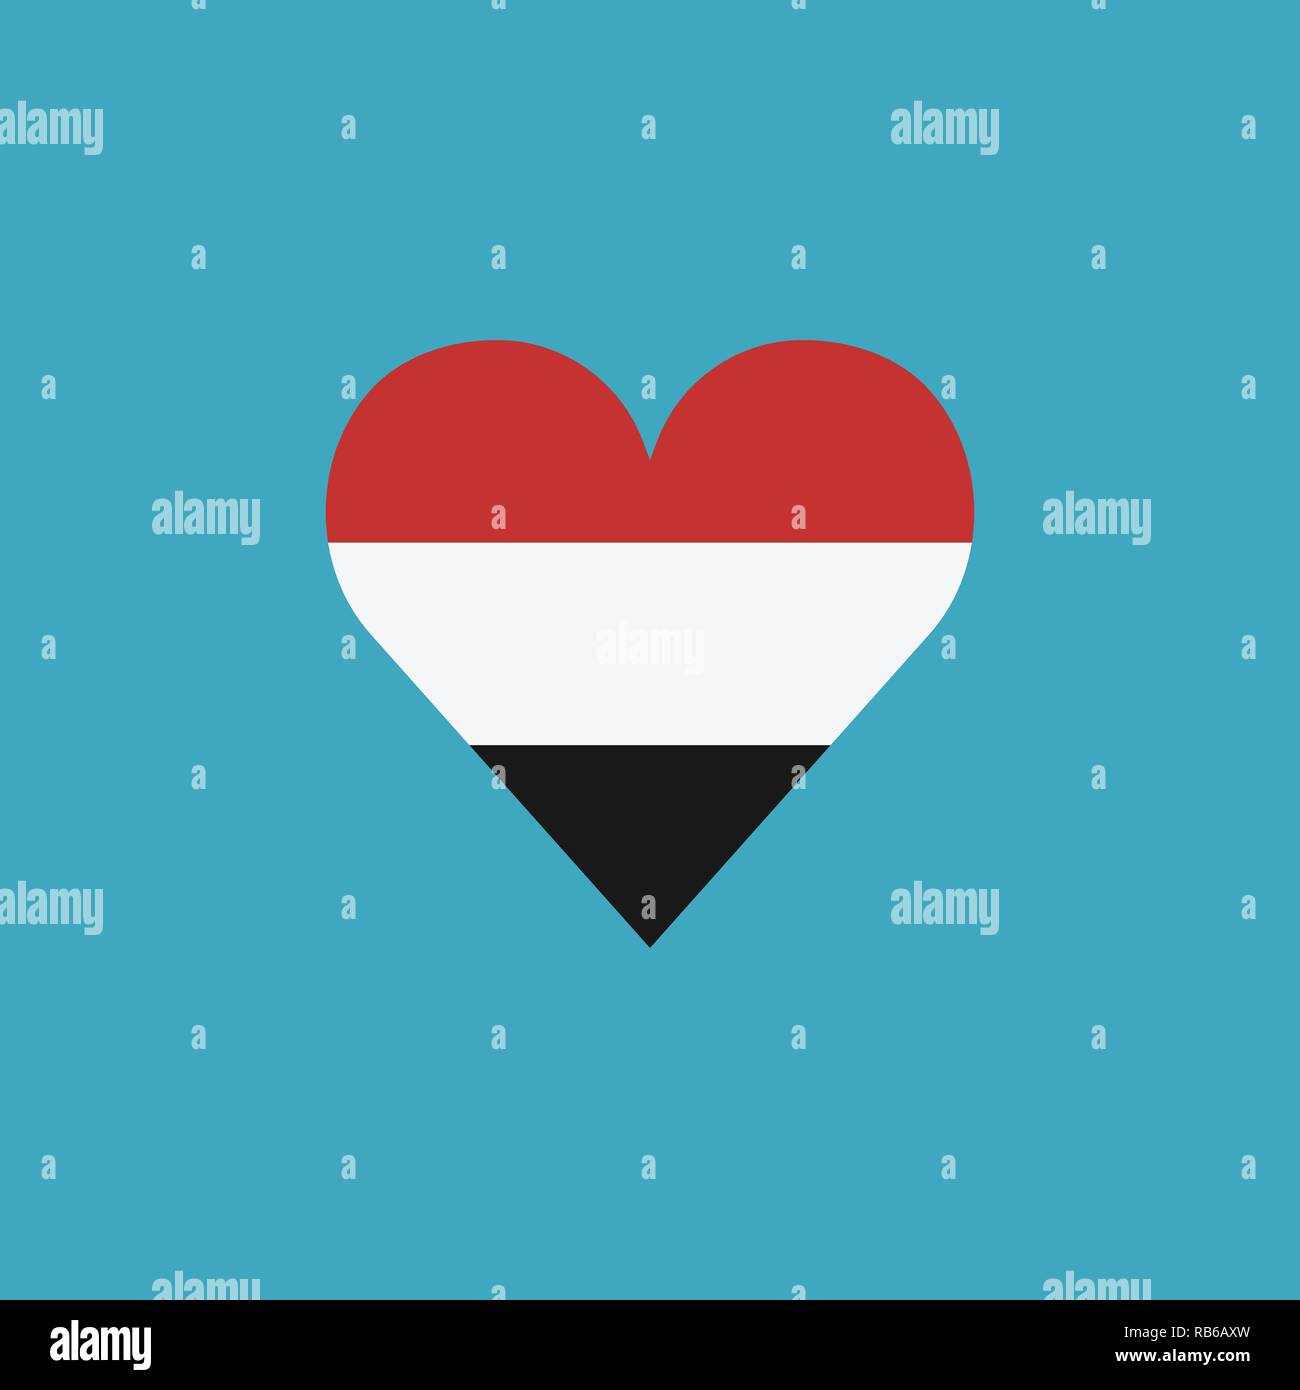 Yemen flag icon in a heart shape in flat design. Independence day or National day holiday concept. - Stock Vector